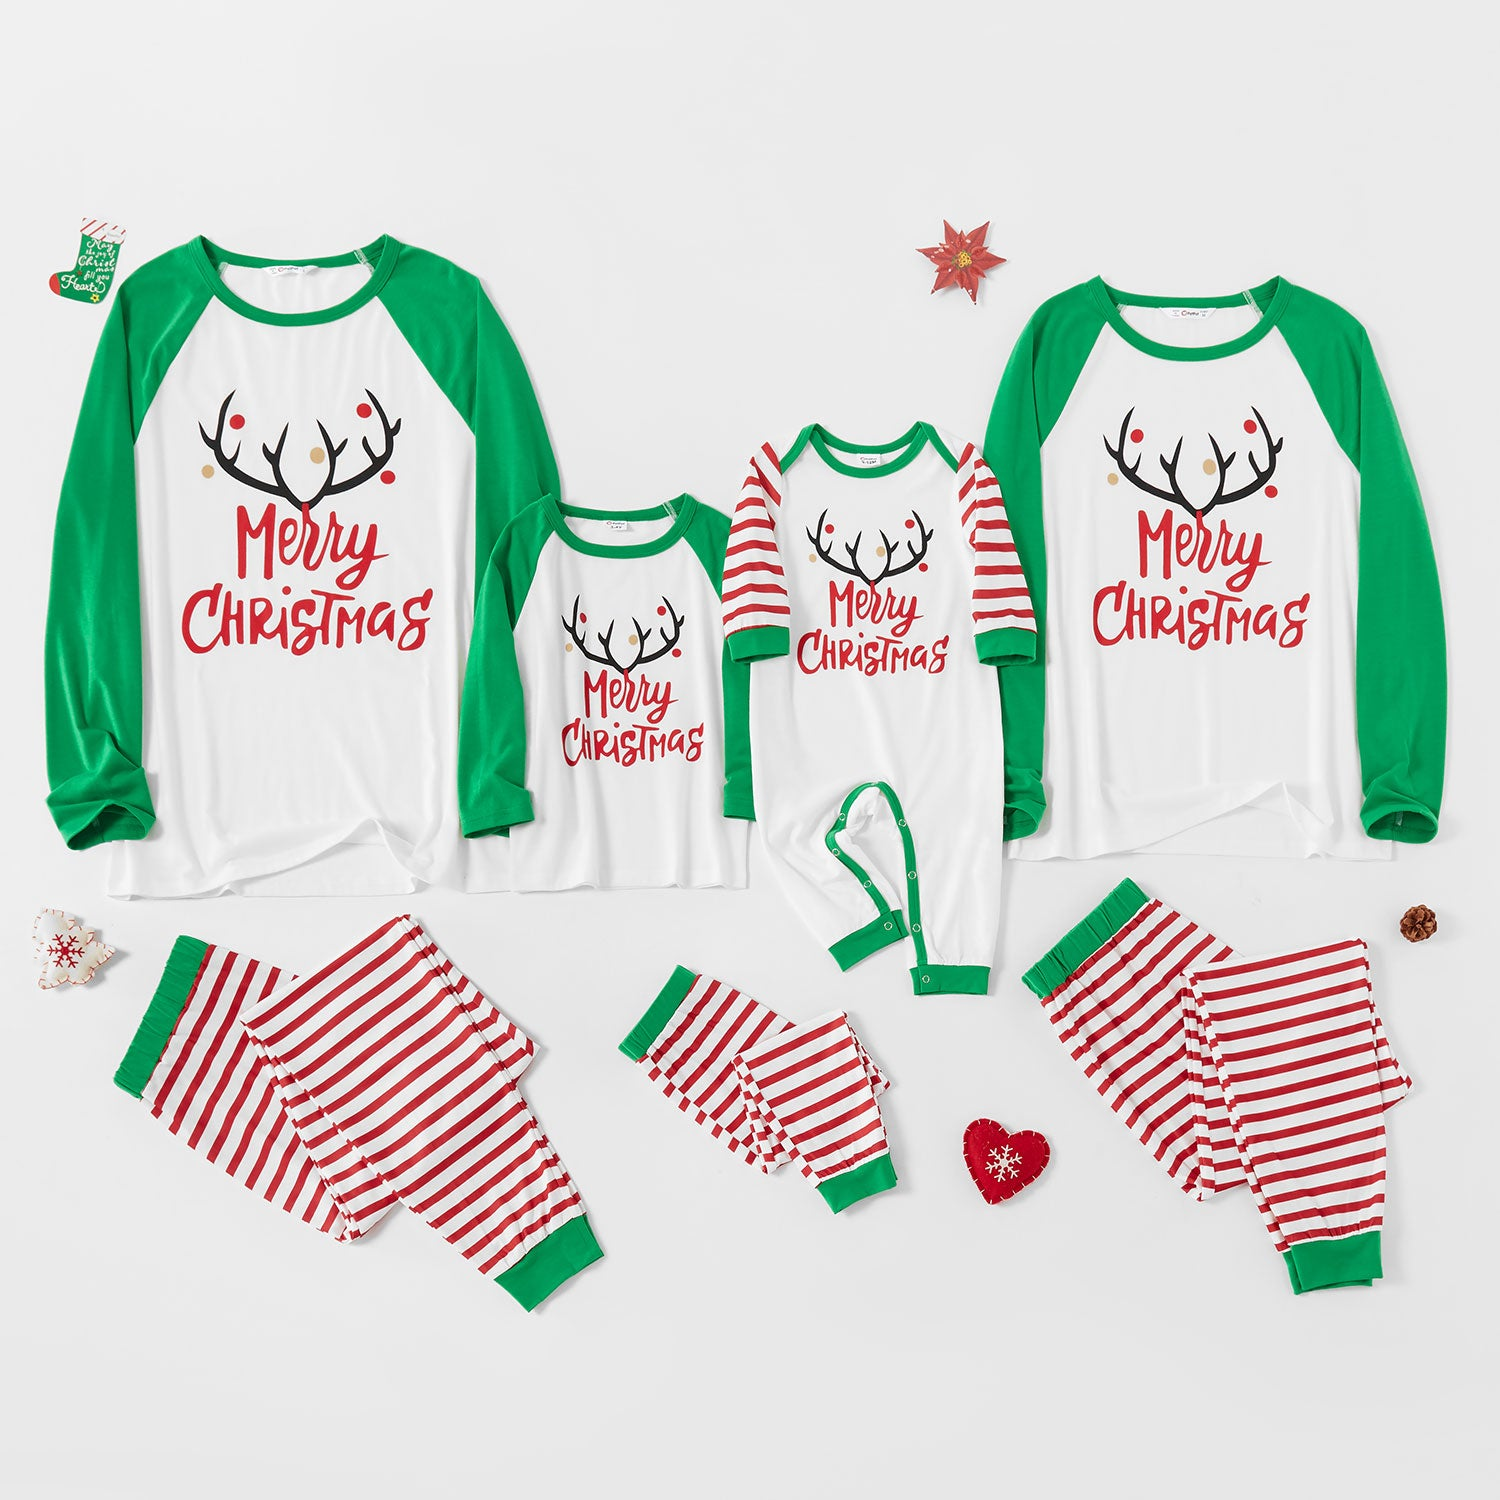 Merry Christmas Antler Top and Striped Pants Family Matching Pajamas Sets (Flame Resistant)